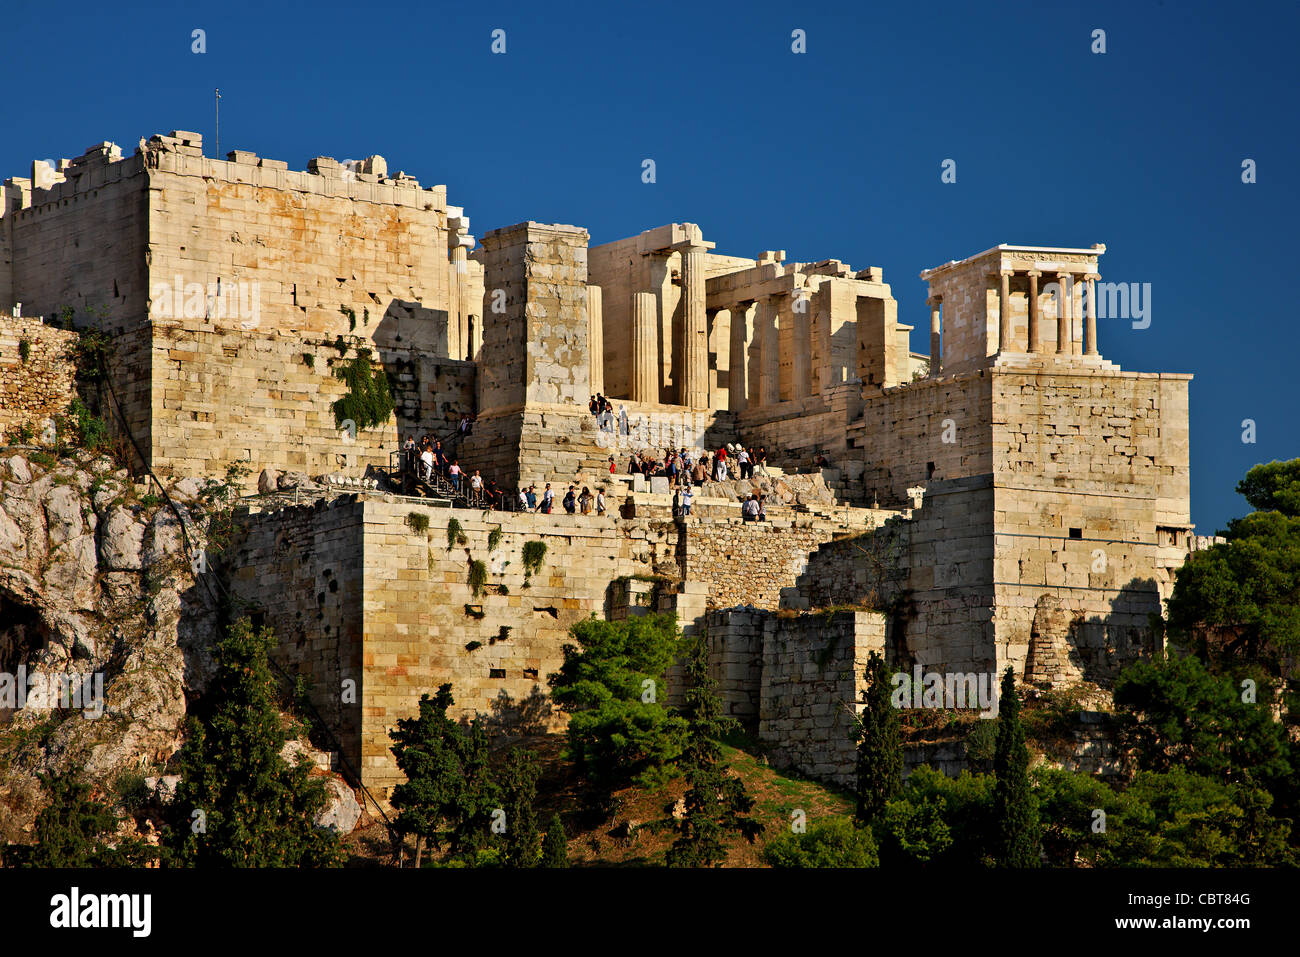 The Propylaea of the Acropolis of Athens with the temple of Athena Nike on the upper right side. Athens, Gree - Stock Image